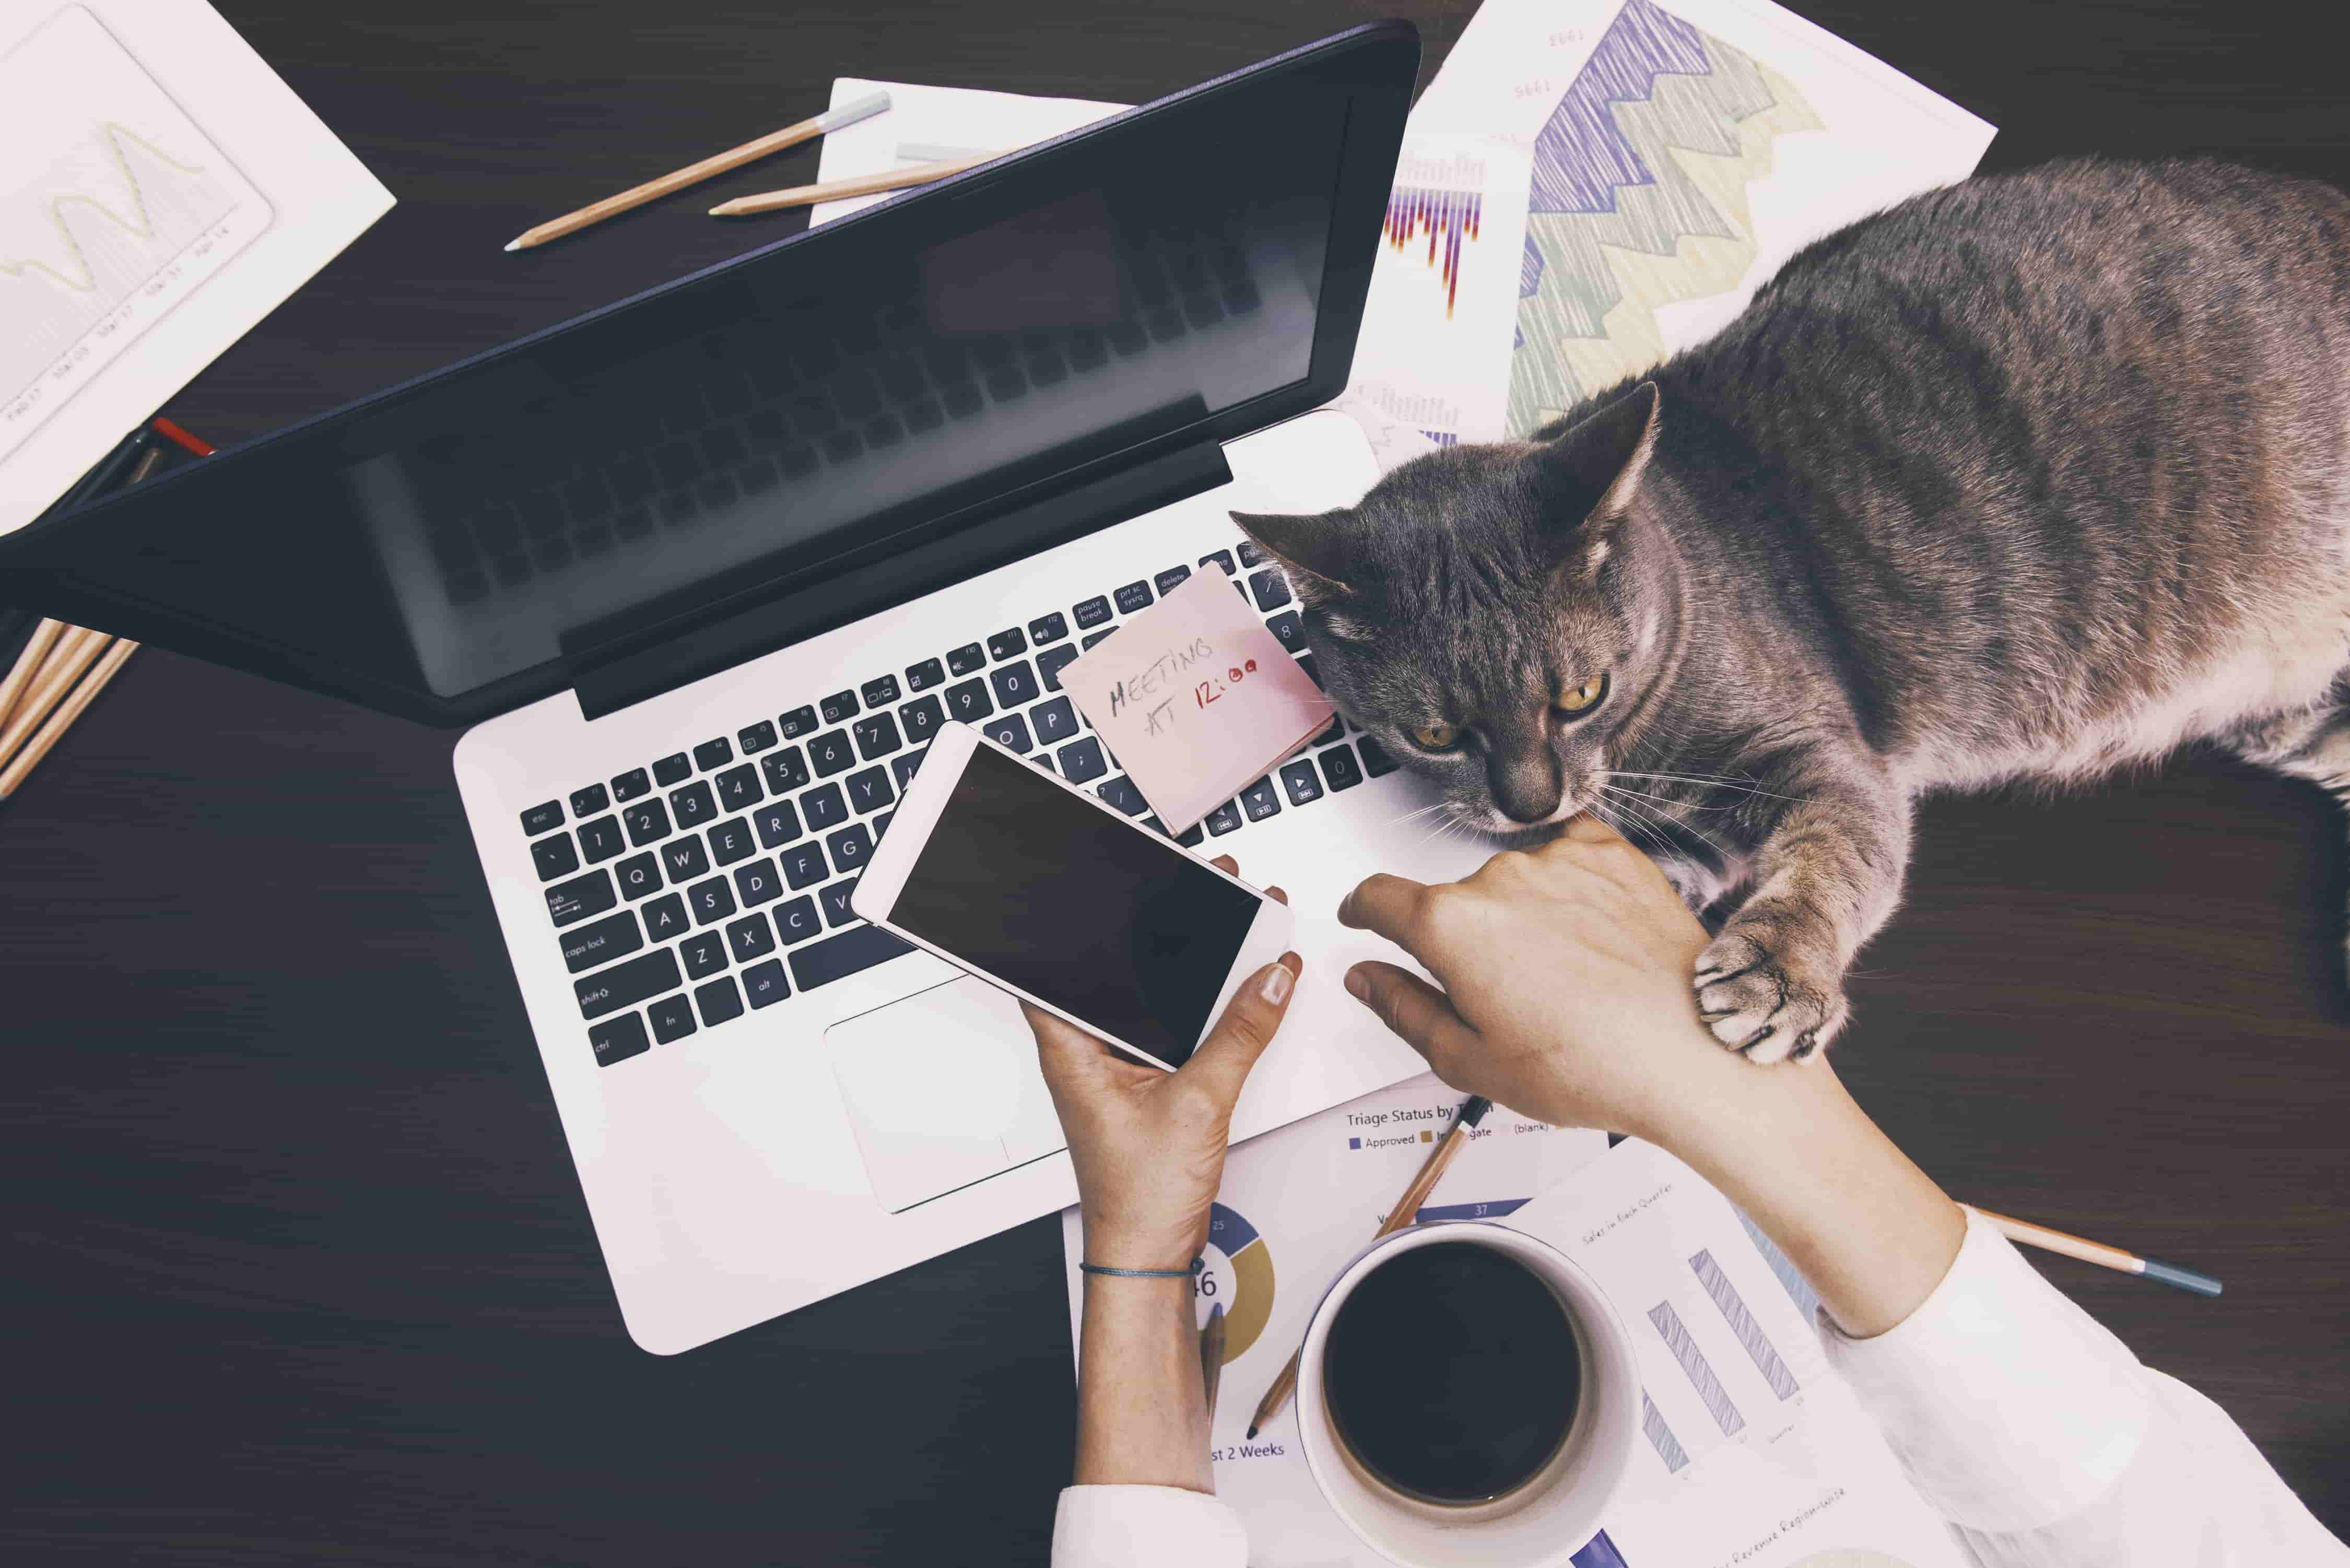 Working from home can be productive with these tips